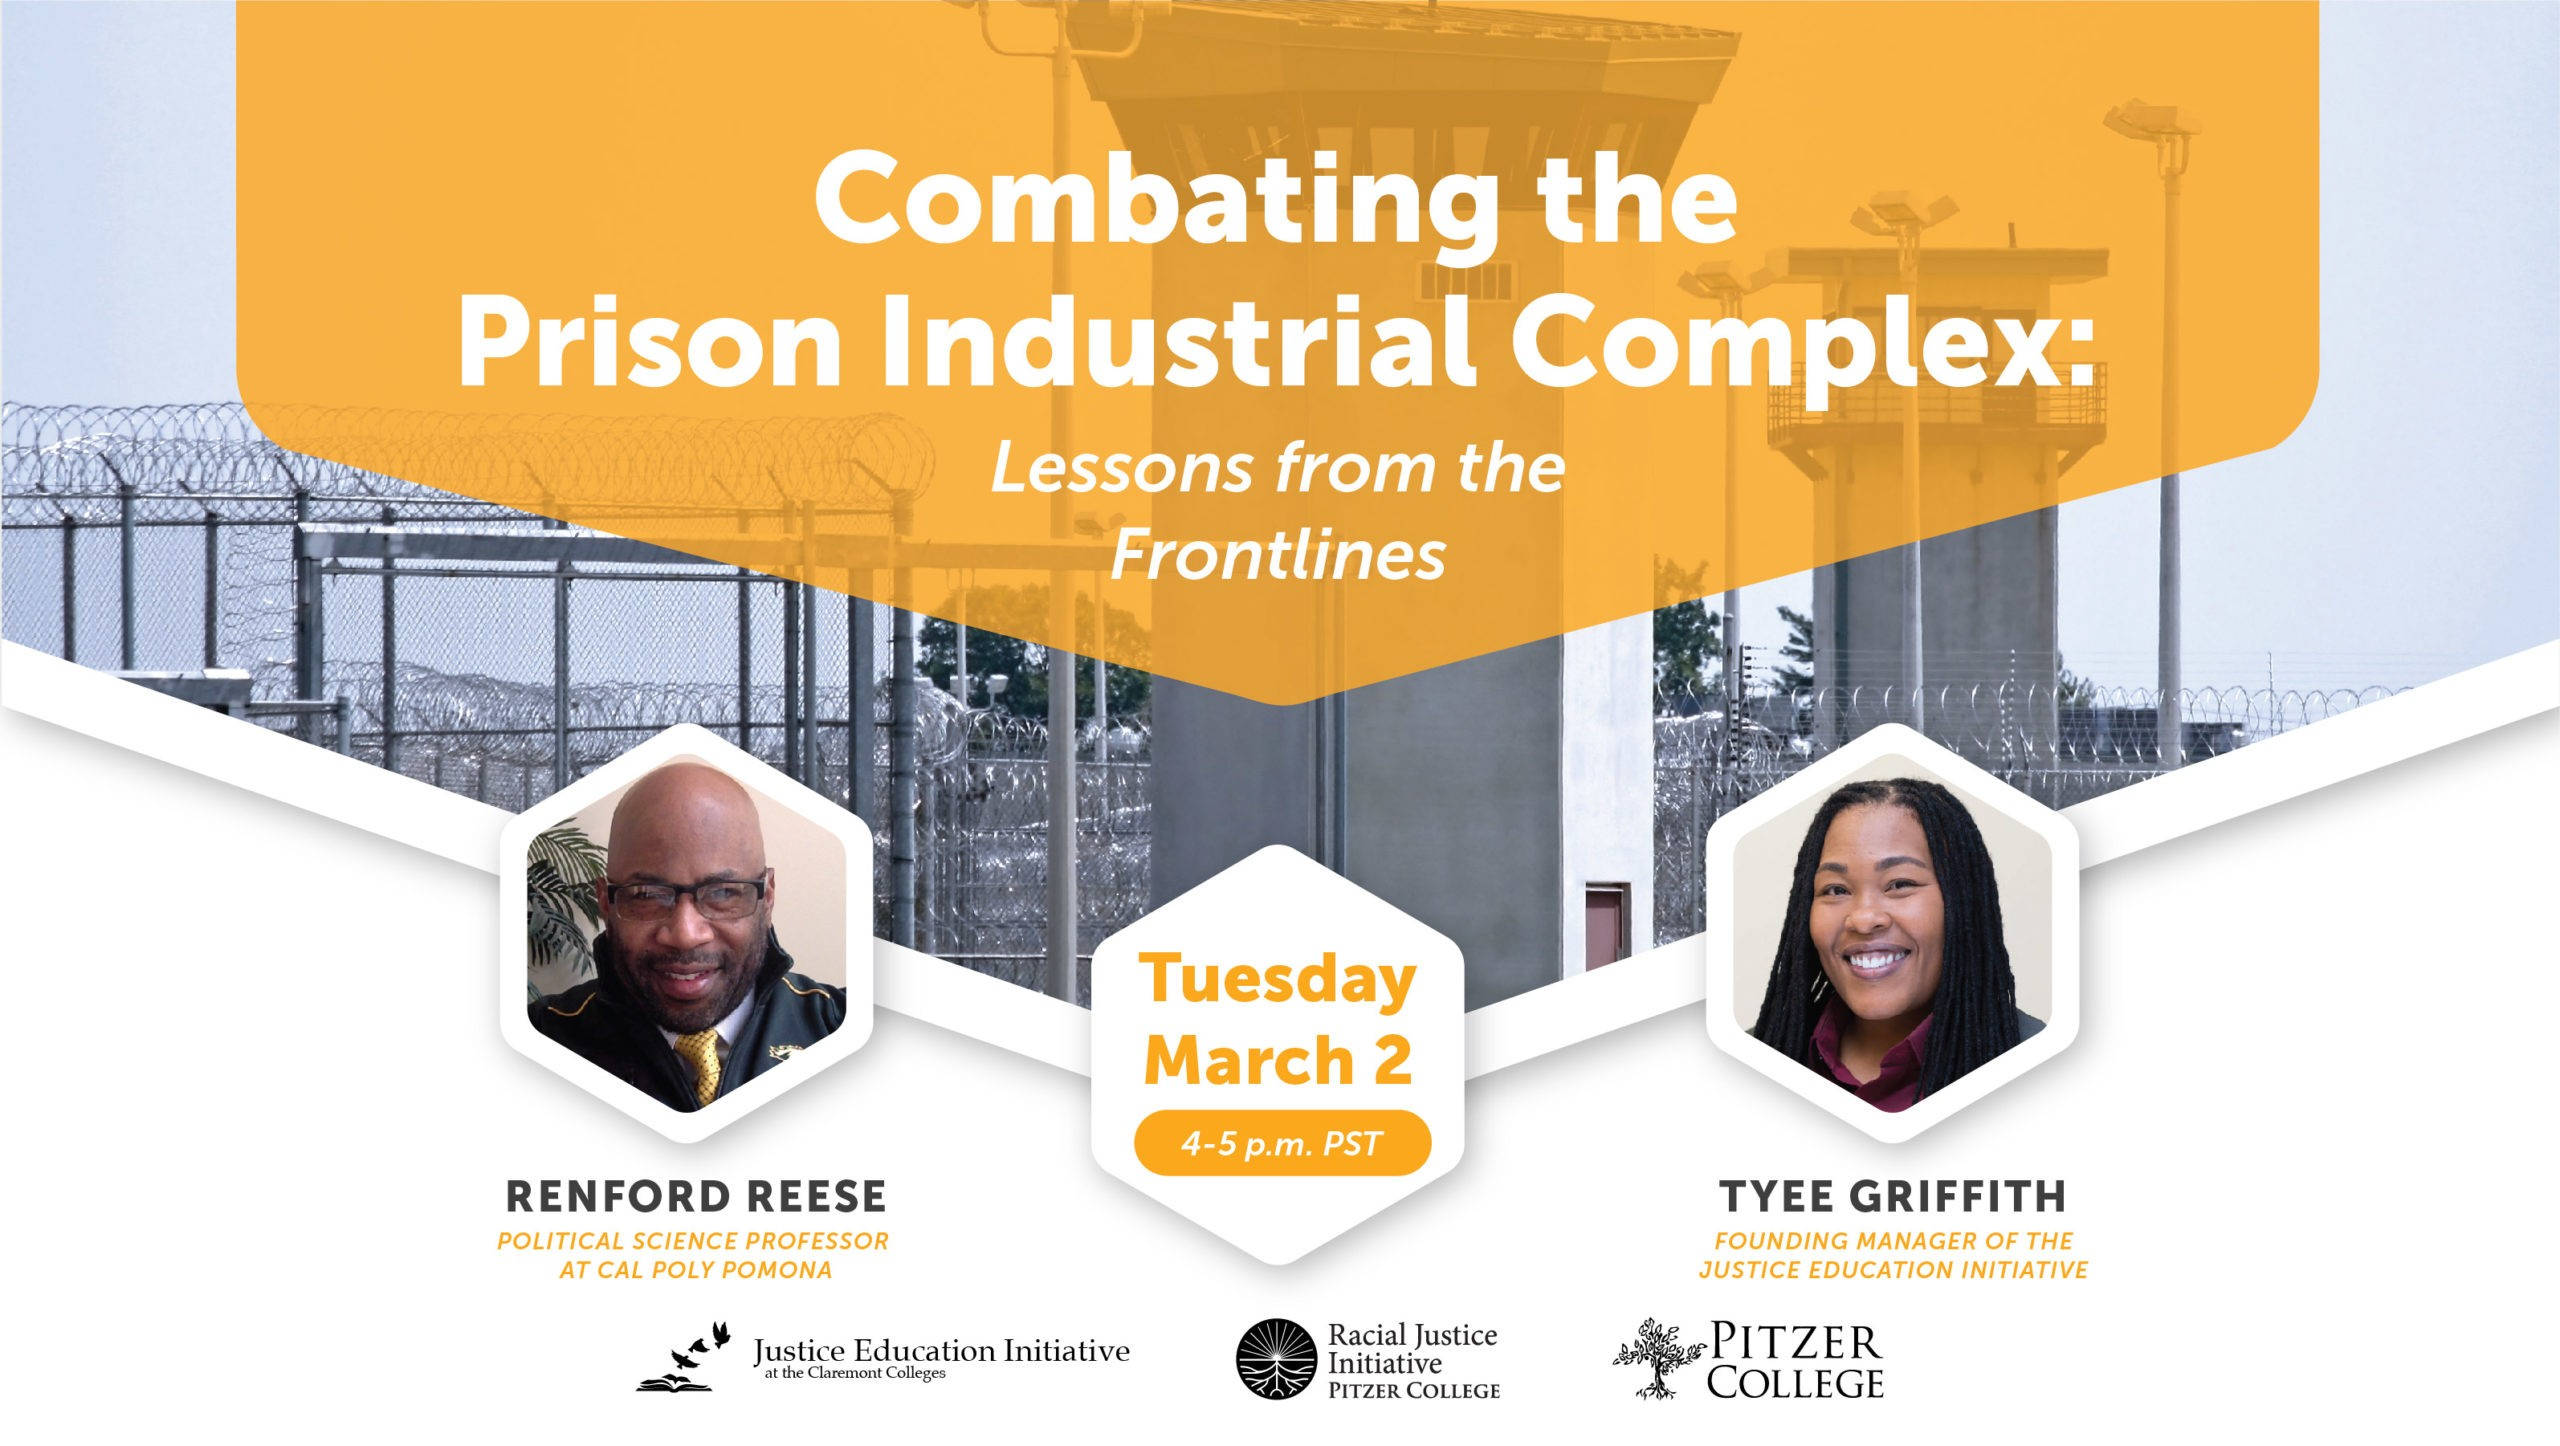 Combating the Prison Industrial Complex